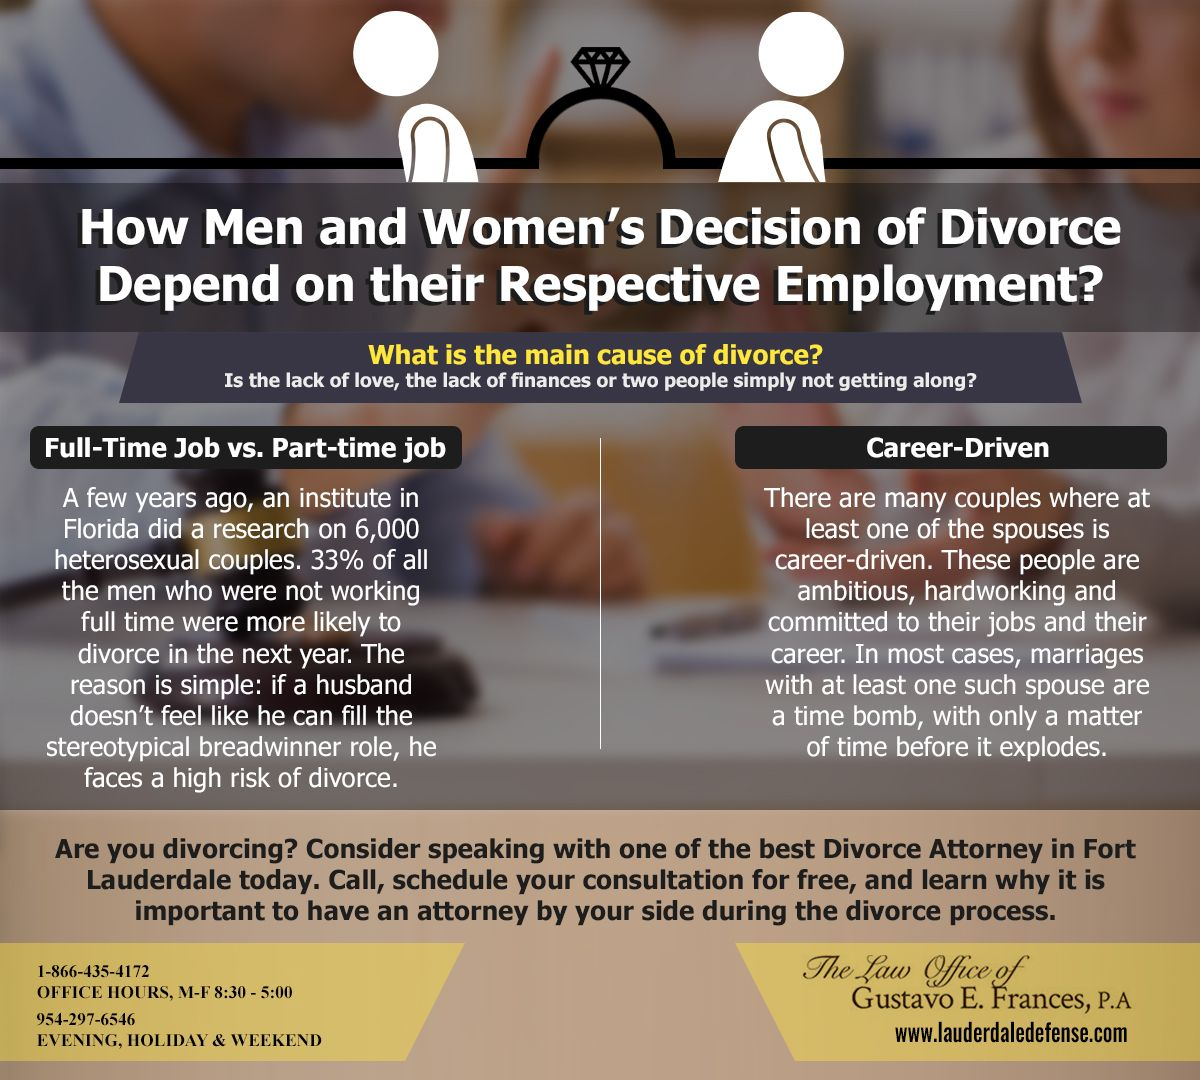 6c4558c839e7fef8fed6947d18596ff4 - How To Get Divorced In Pa Without A Lawyer